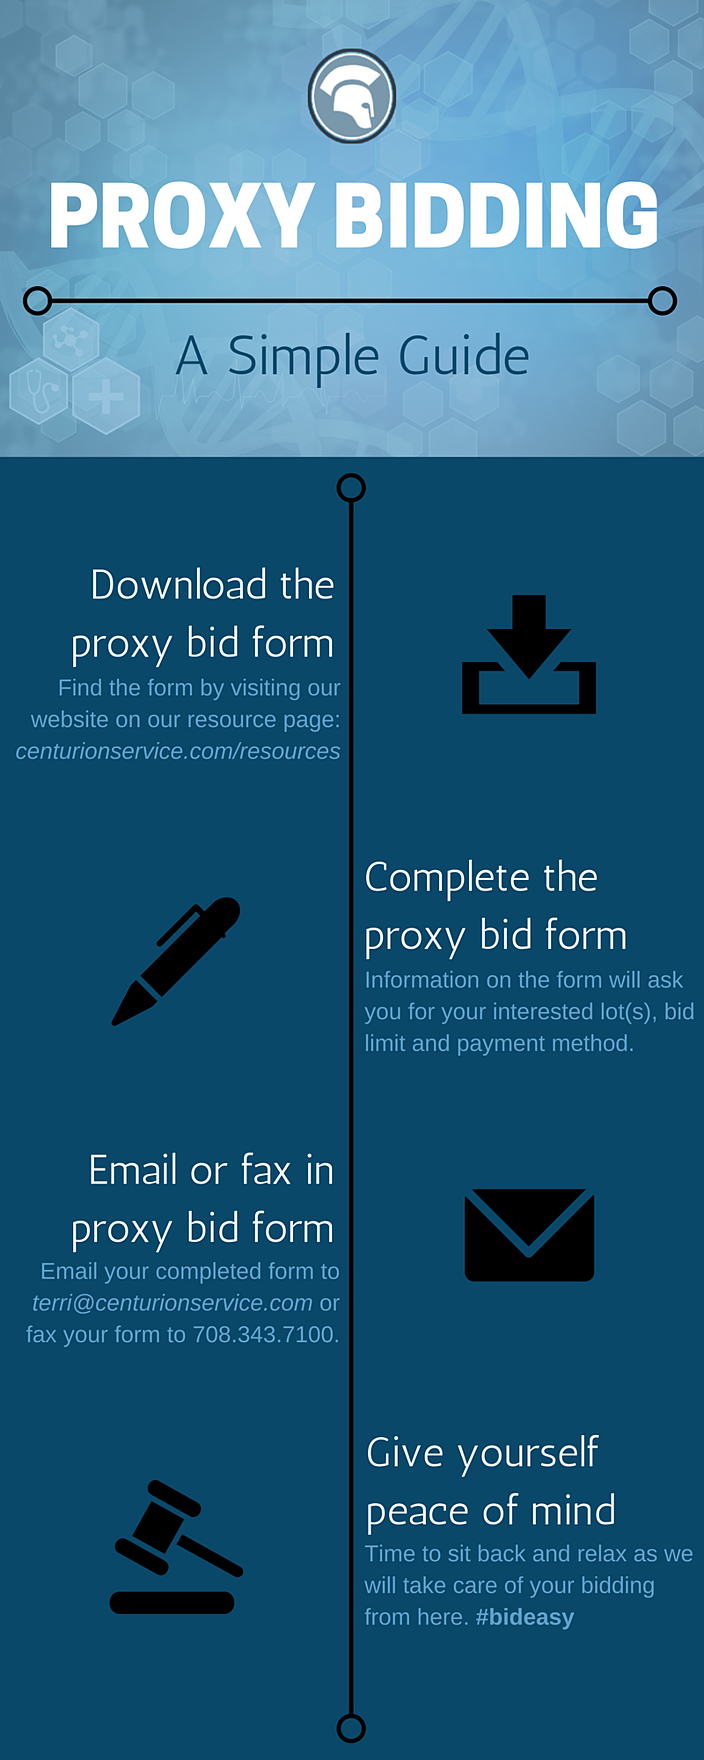 A Simple Guide to Proxy Bidding .png